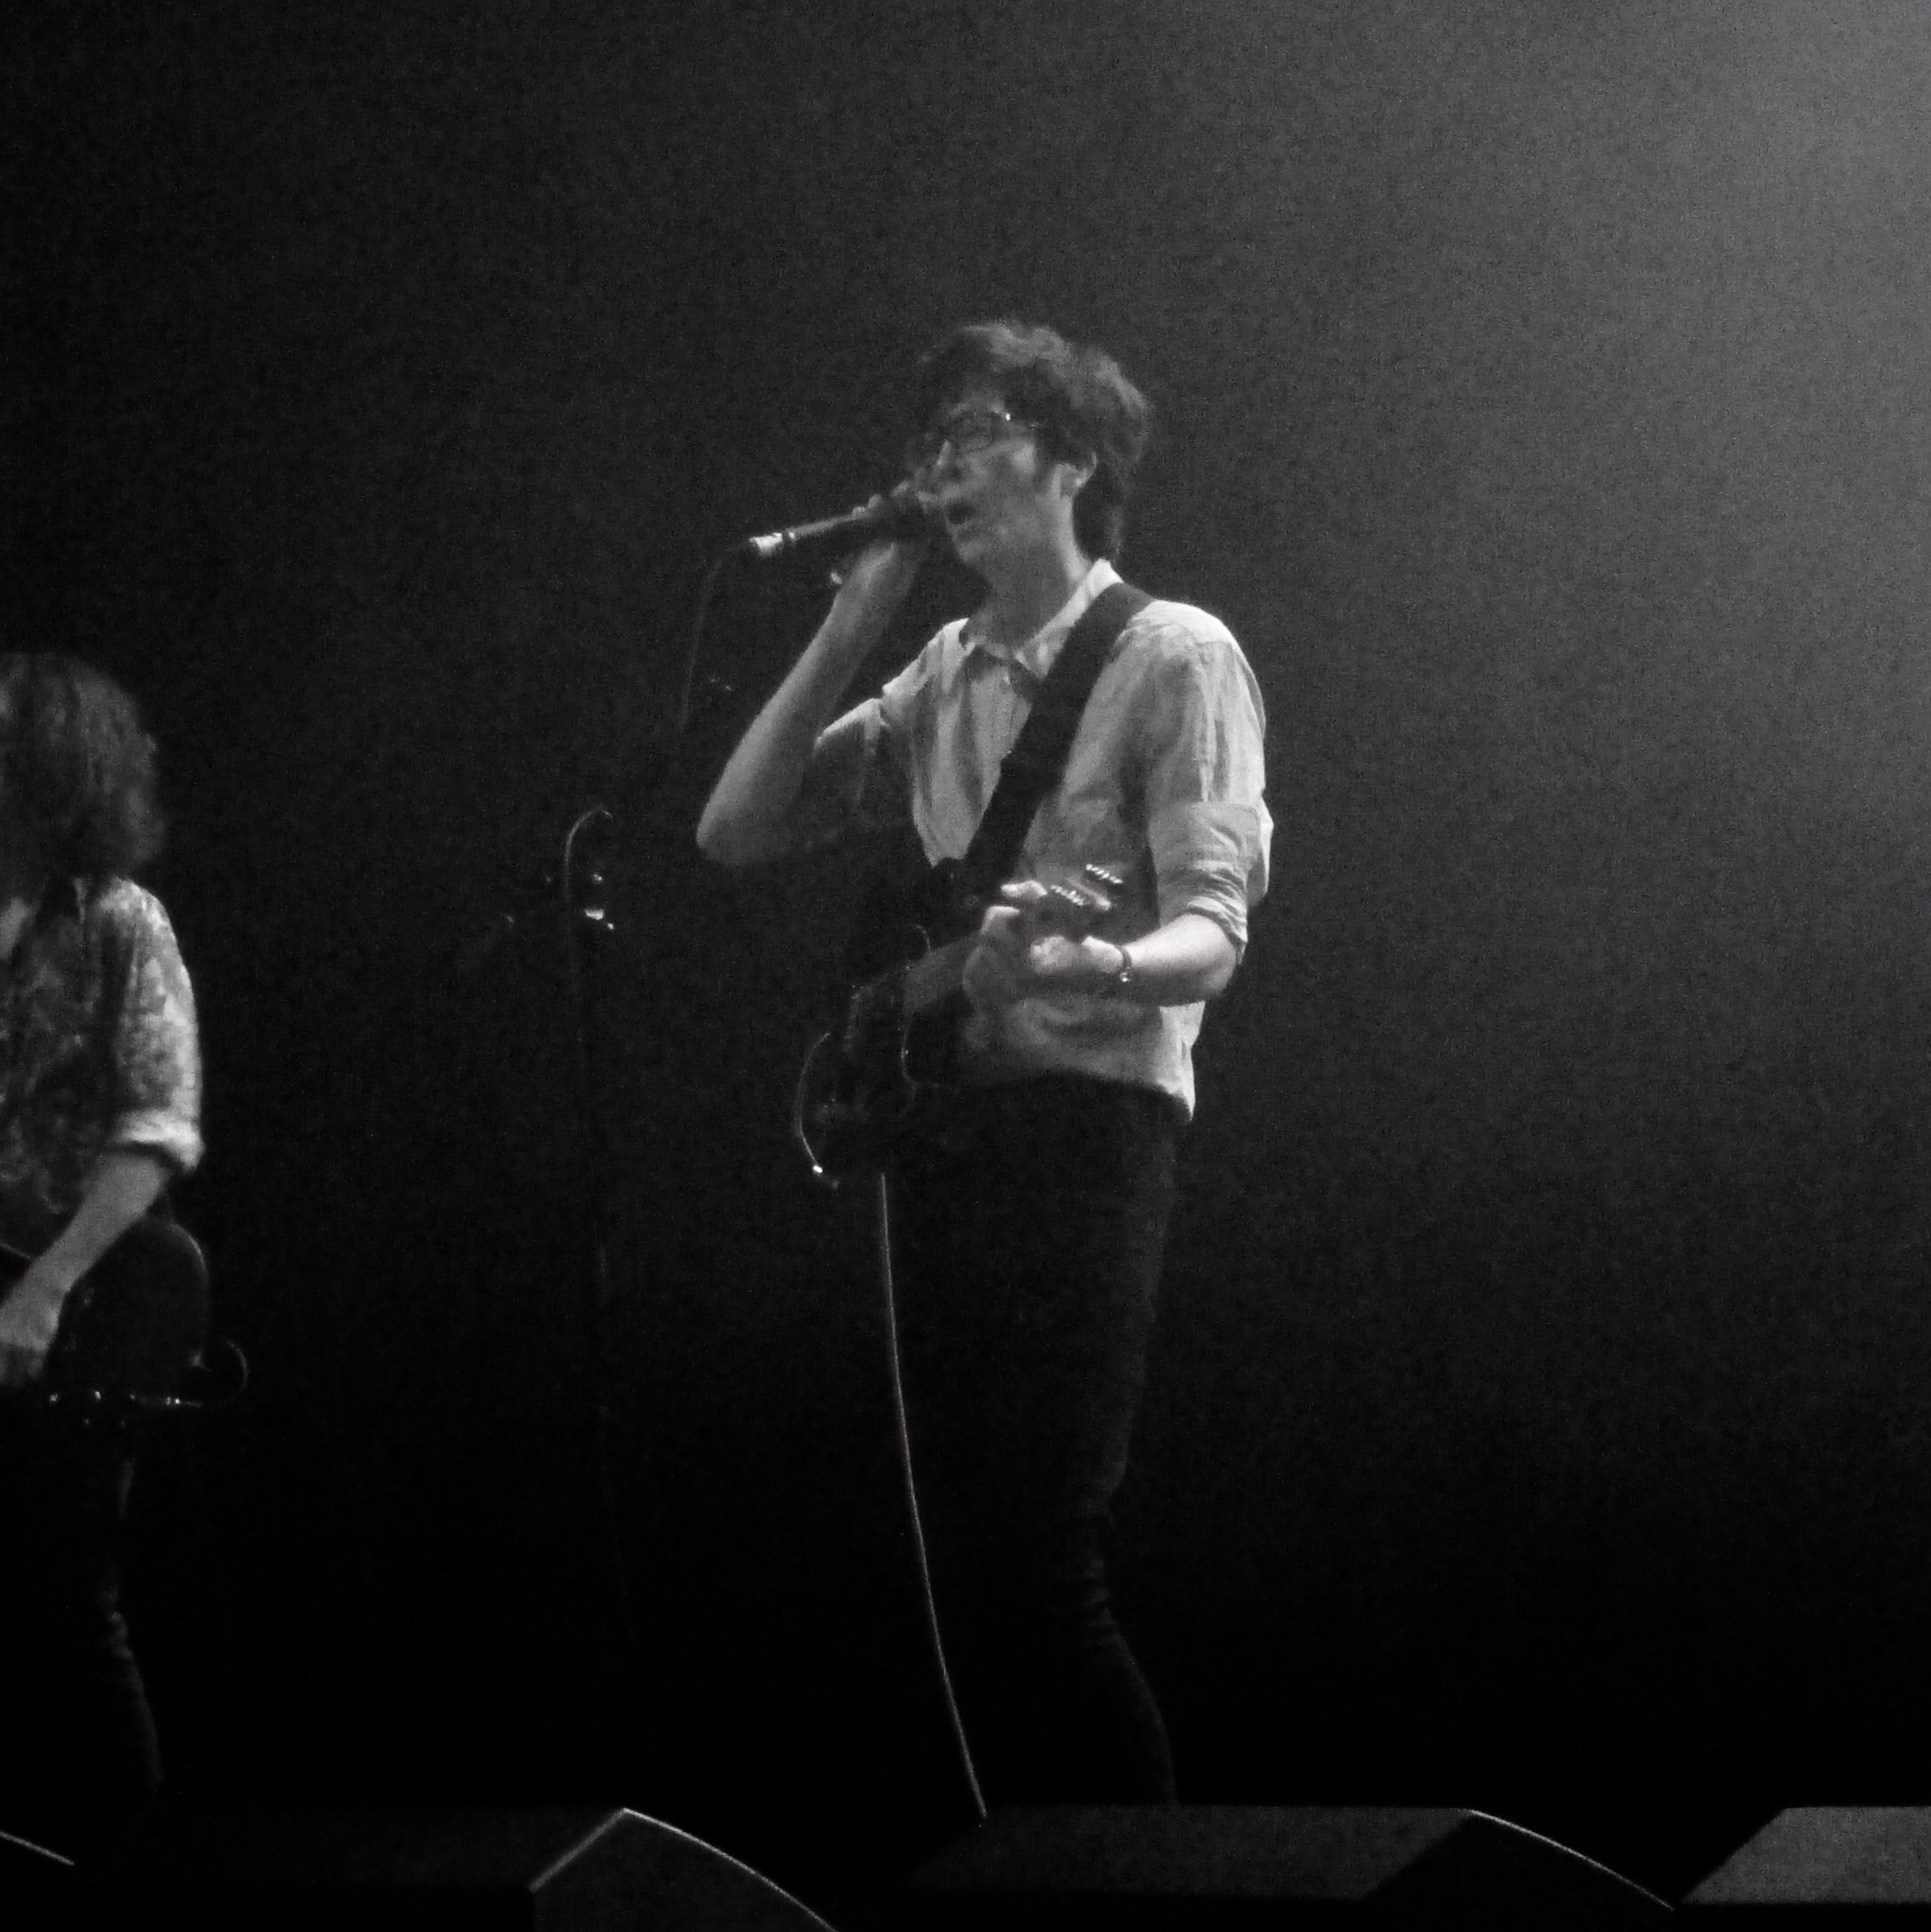 Car Seat Headrest Steps Up As Headliner: Live at The Forum – Every ...